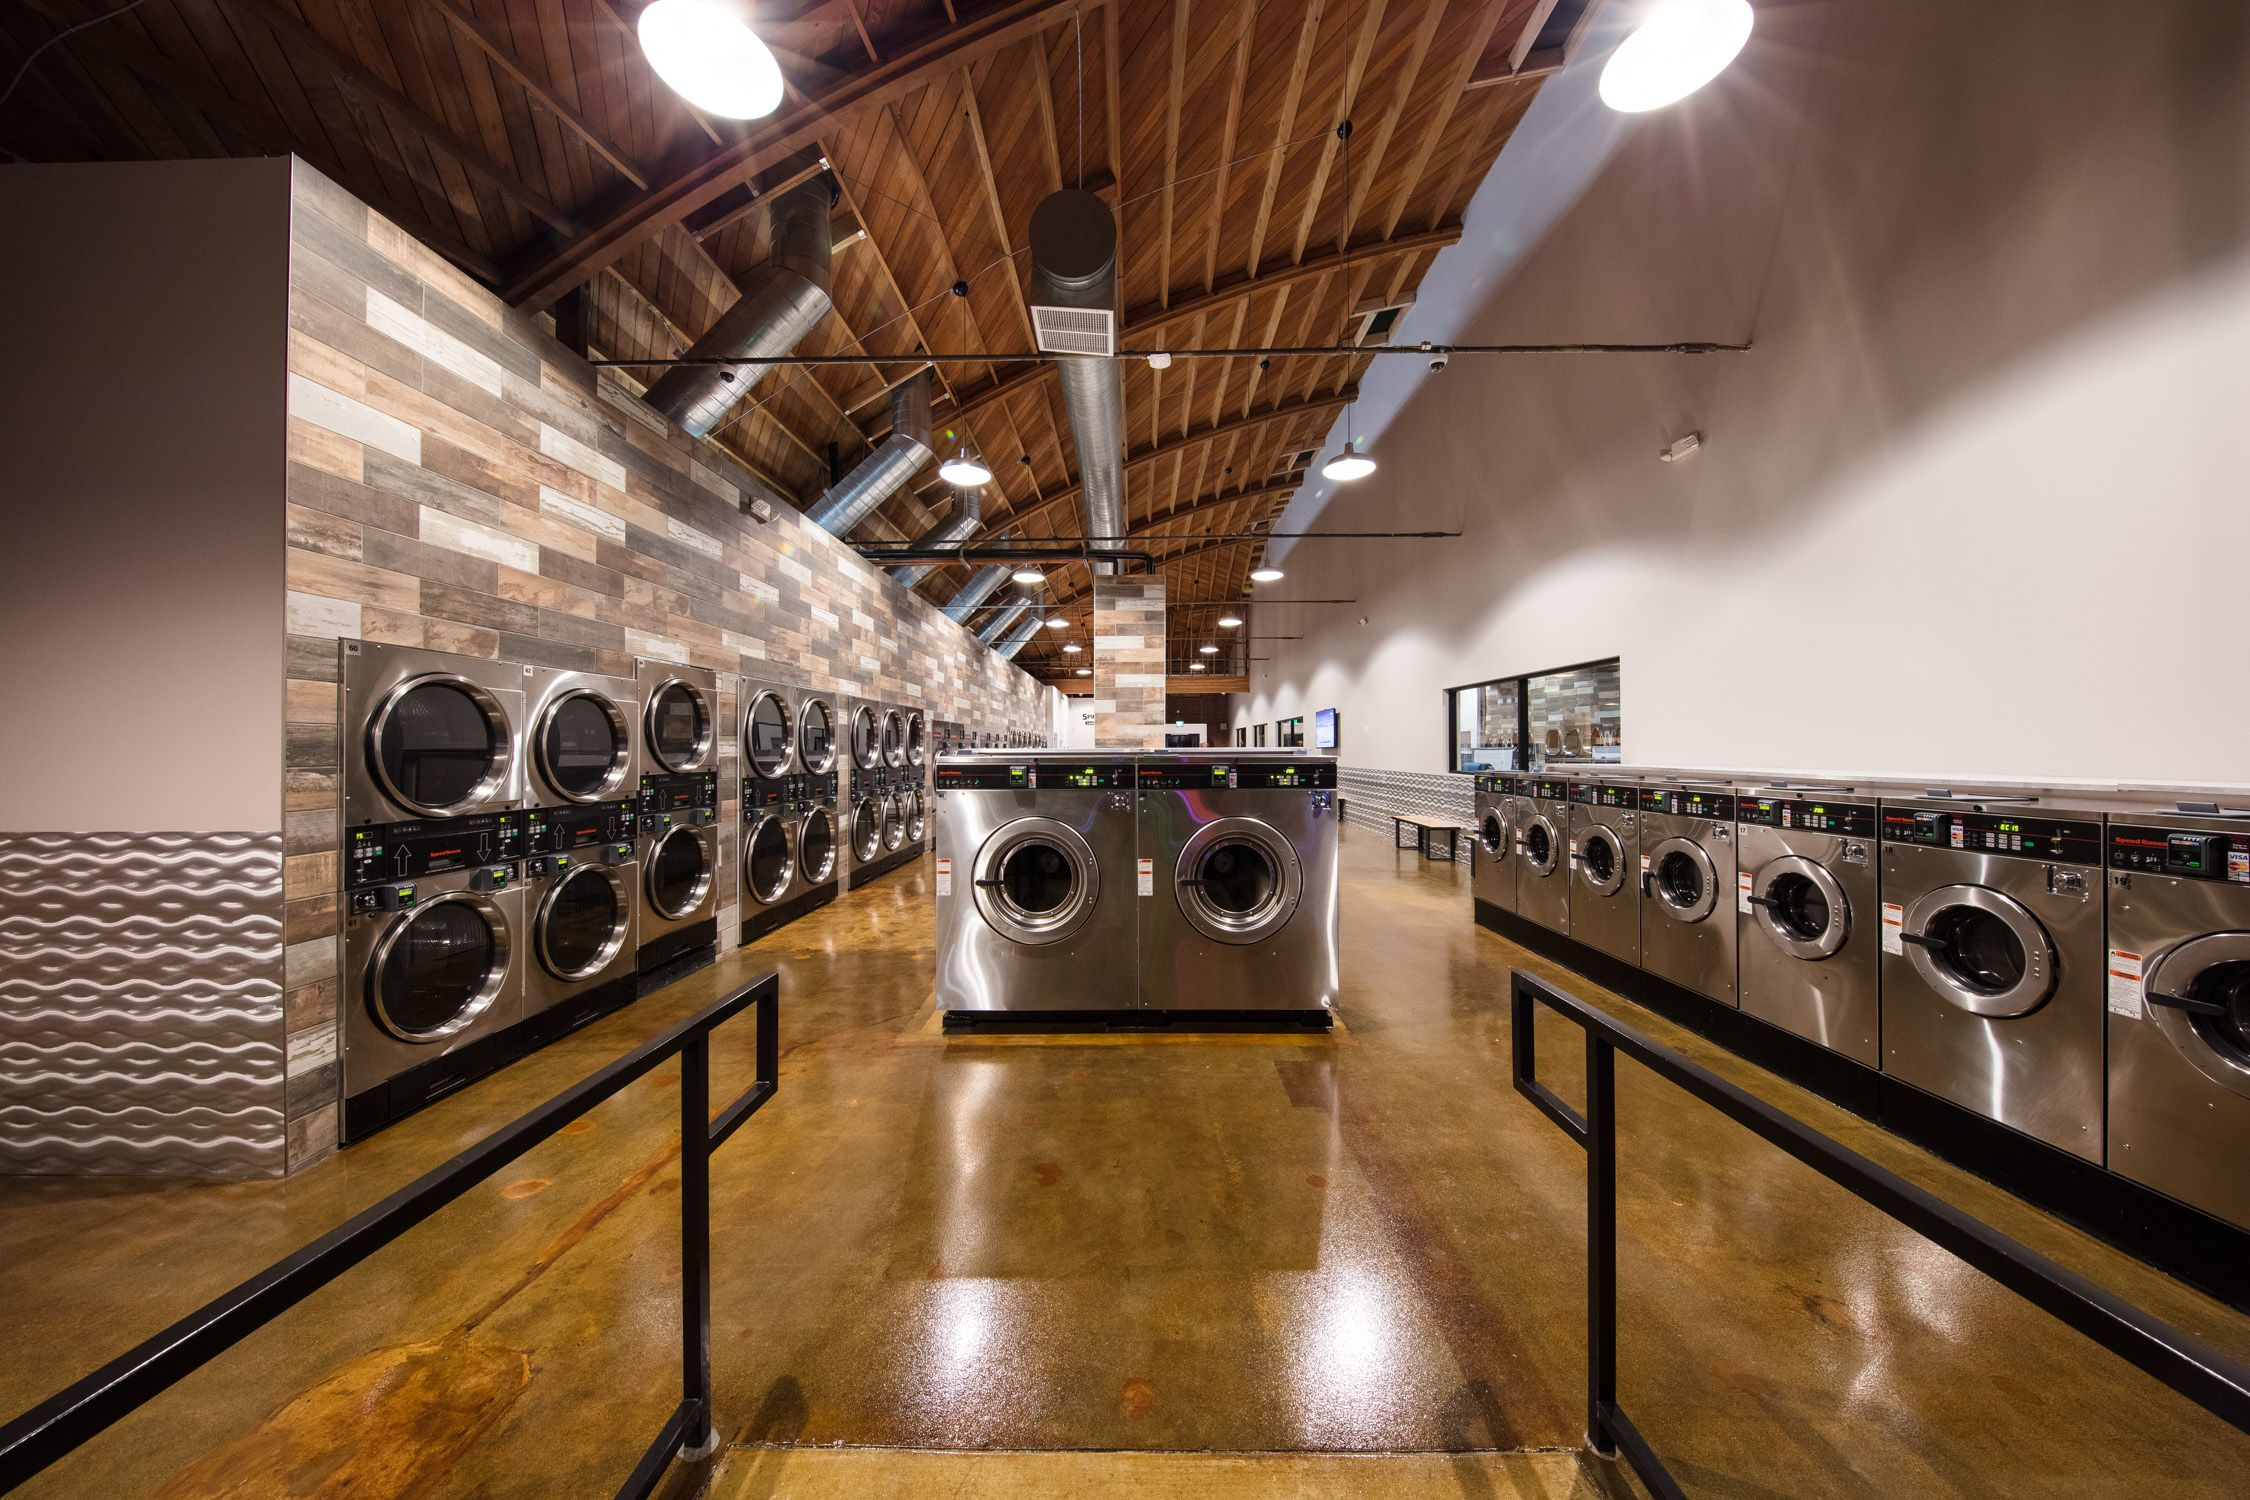 SpinCycle Laundry Lounge - South Gate Laundromat in 2020 ...